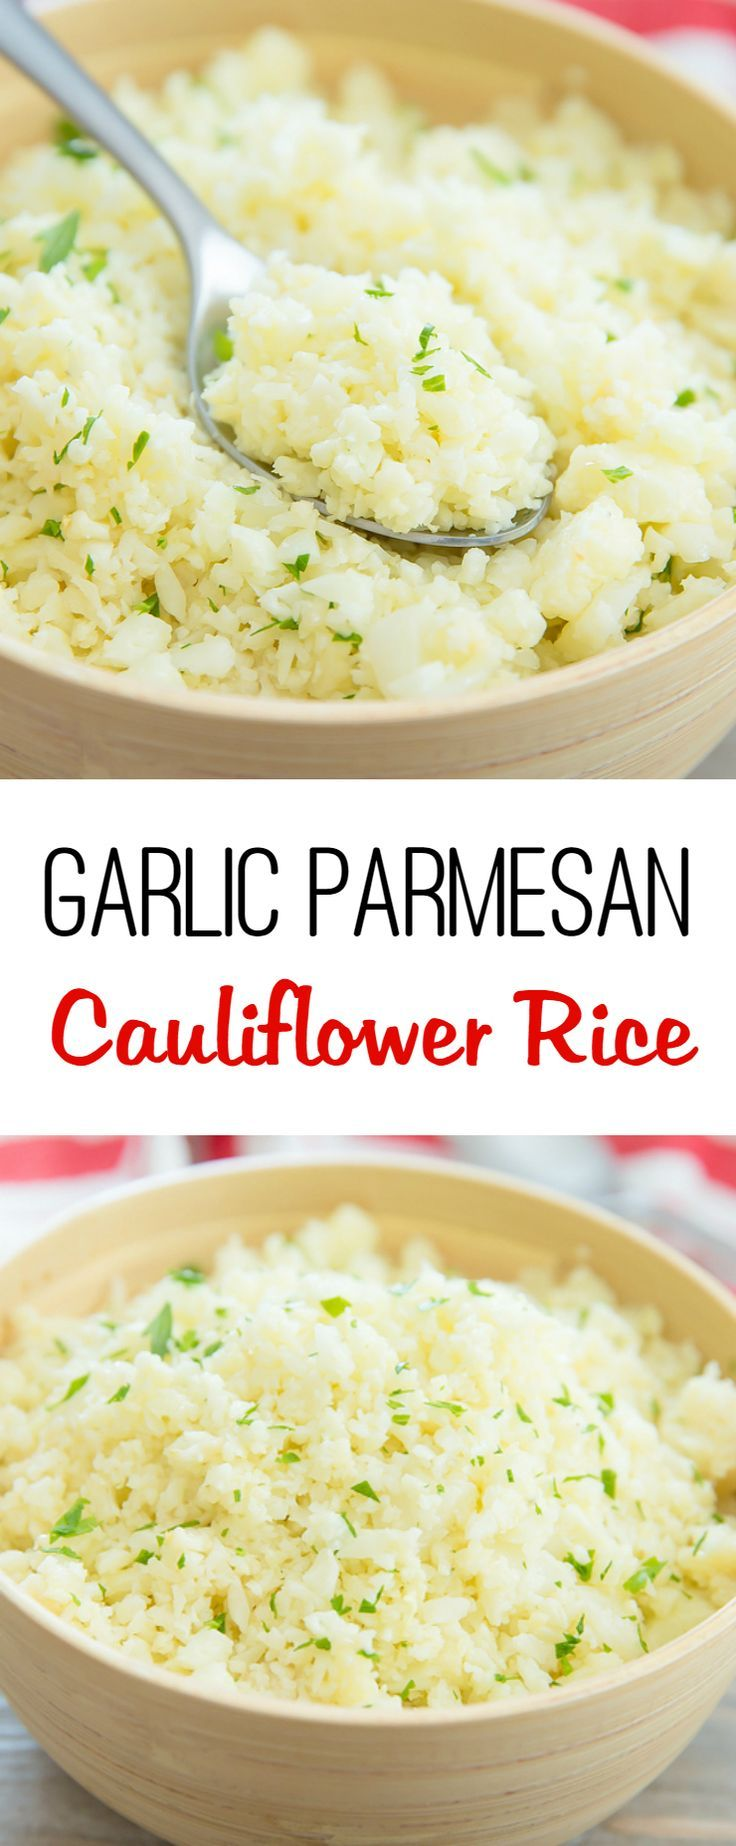 Garlic Parmesan Cauliflower Rice